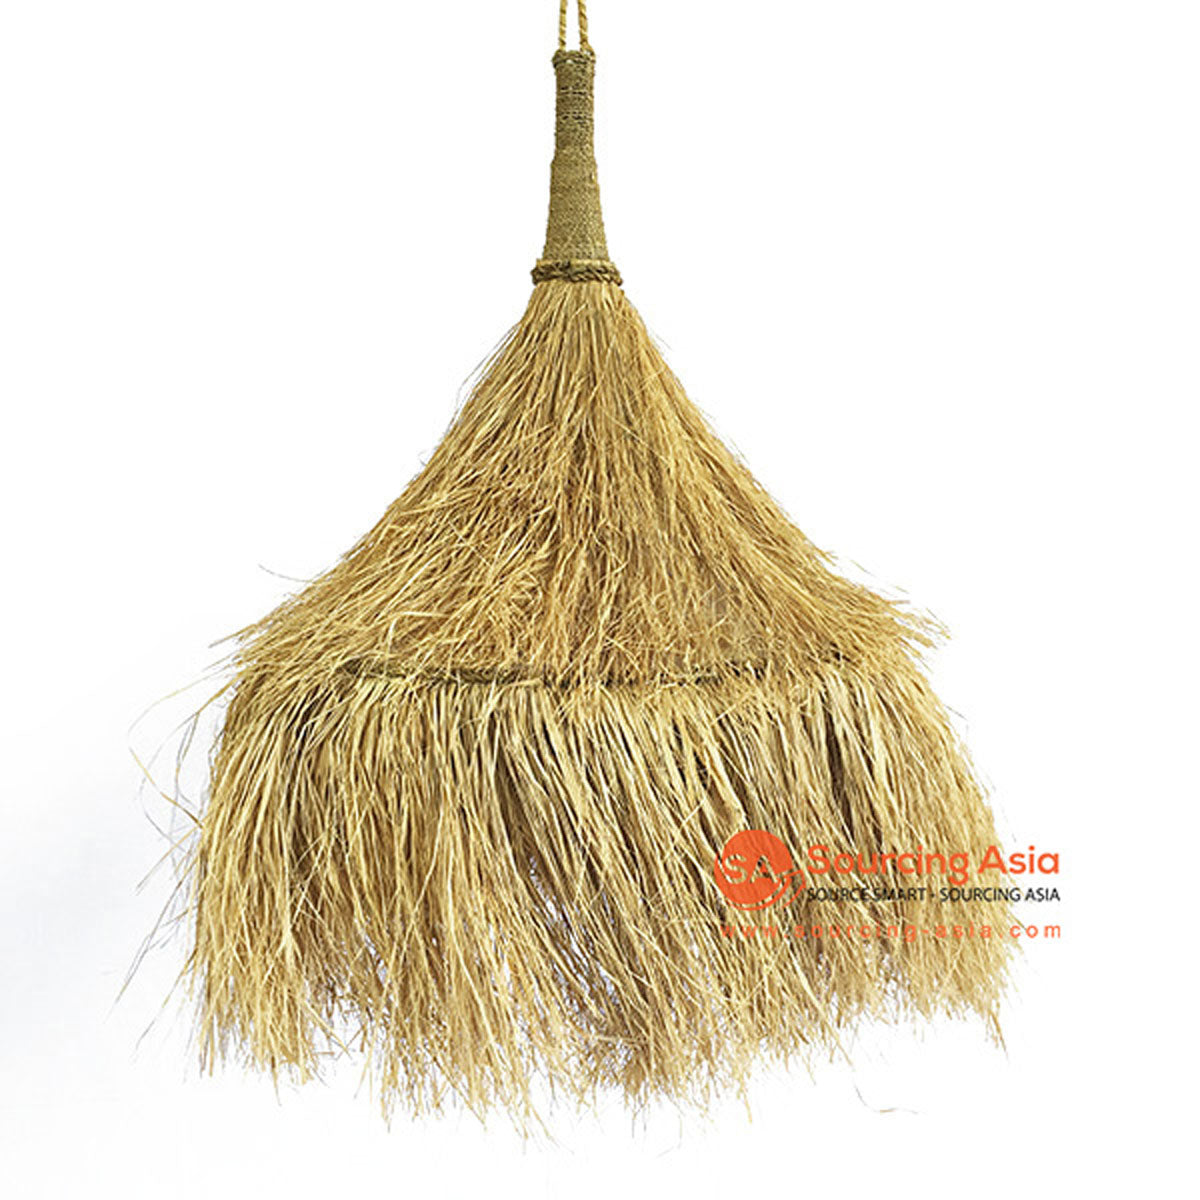 SHL063-6 NATURAL SEA GRASS PENDANT LAMP WITH FRINGE